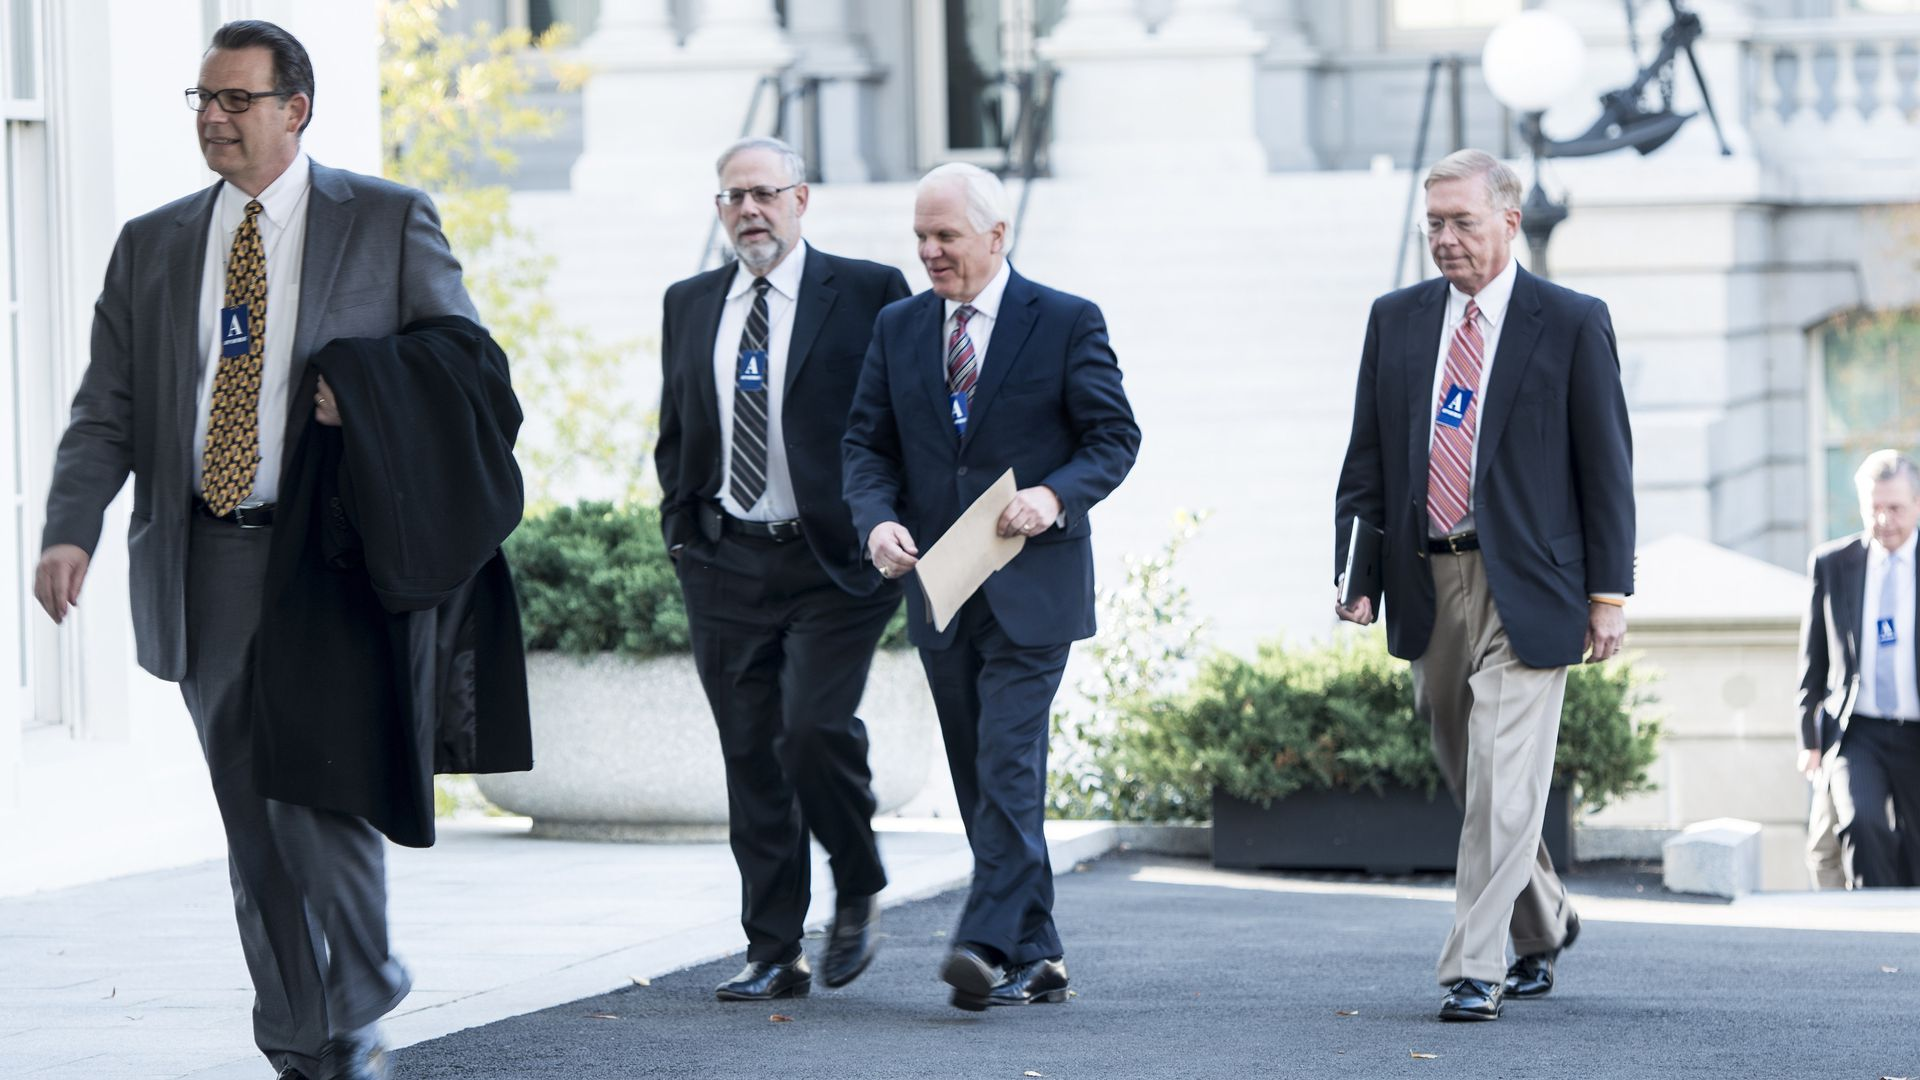 Joseph Swedish and other health insurance executives walk into the White House.